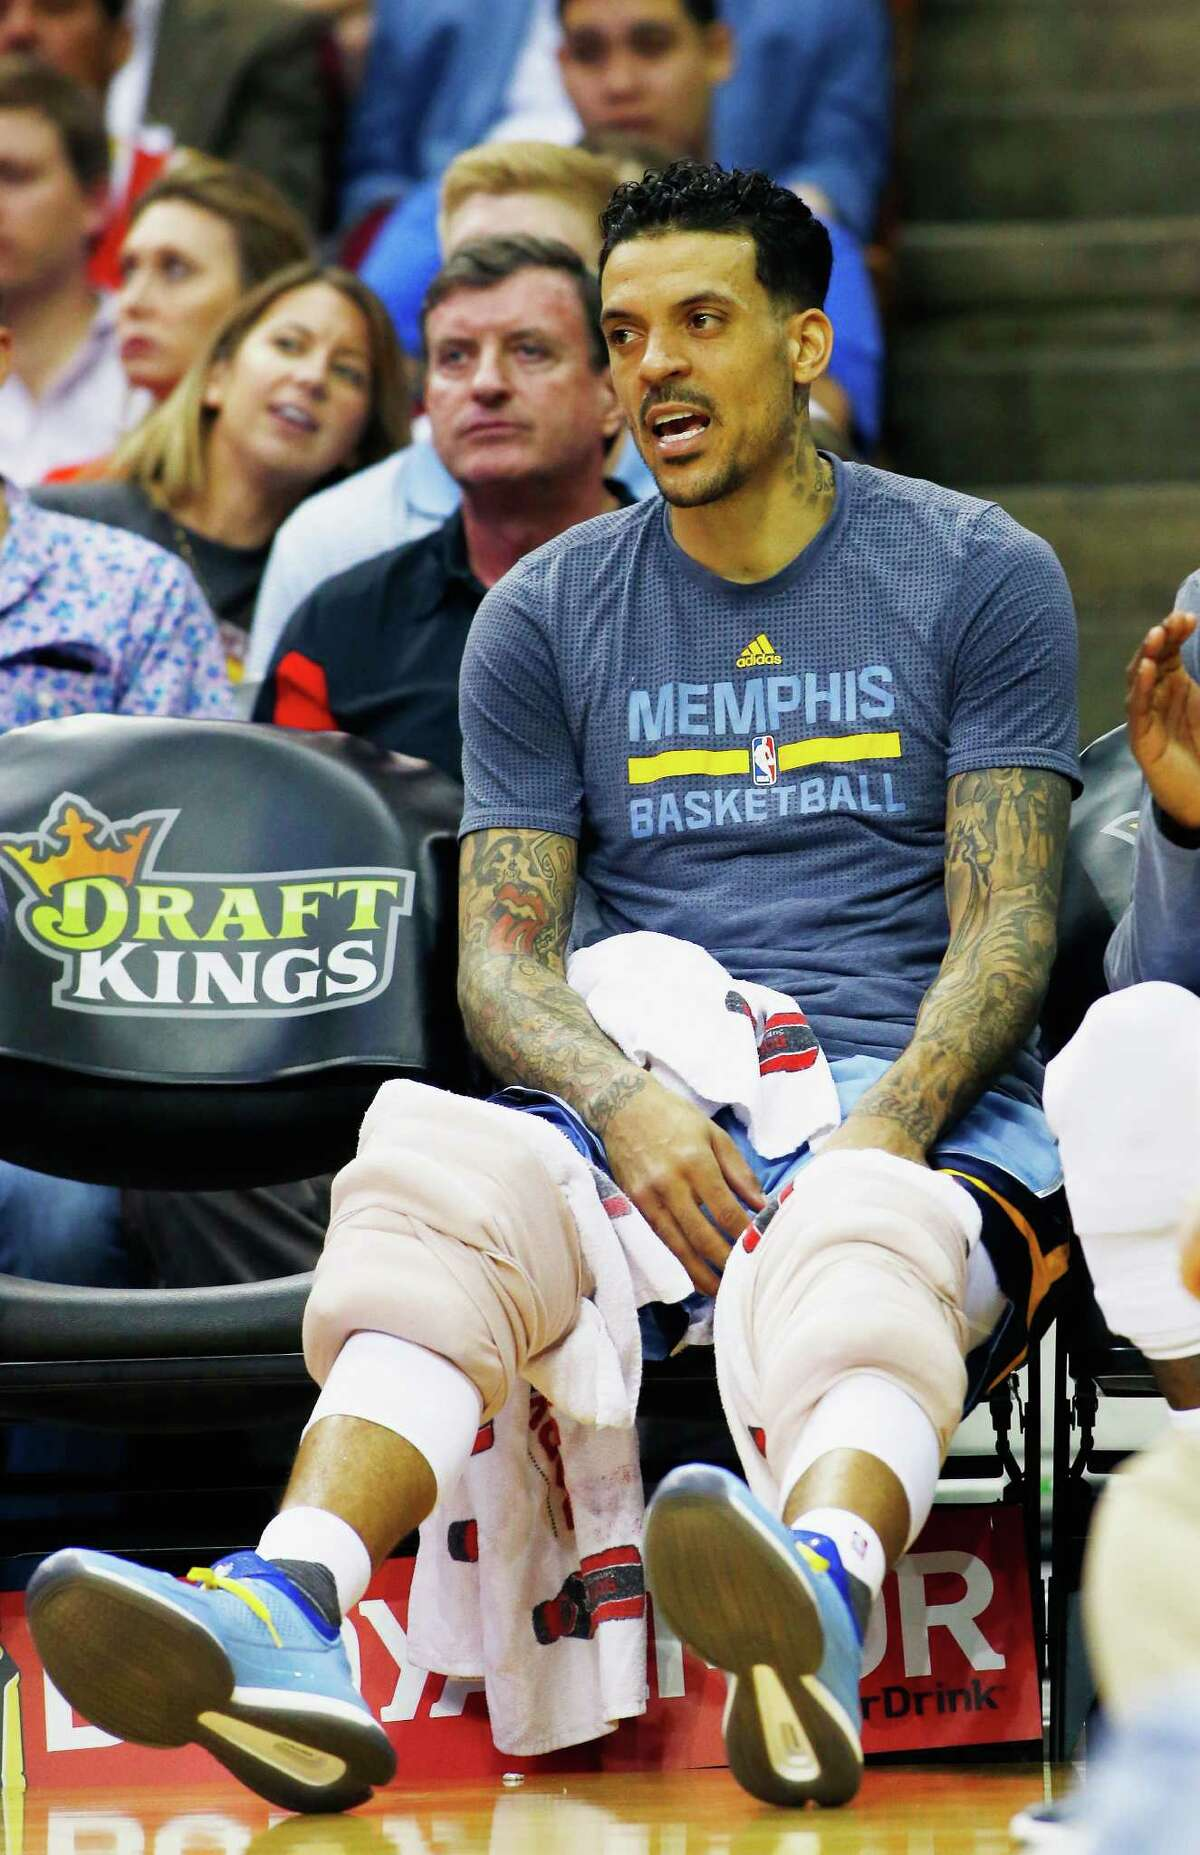 HOUSTON, TX - MARCH 14: Matt Barnes #22 of the Memphis Grizzlies waits on the bench during their game against the Houston Rockets at the Toyota Center on March 14, 2016 in Houston, Texas.